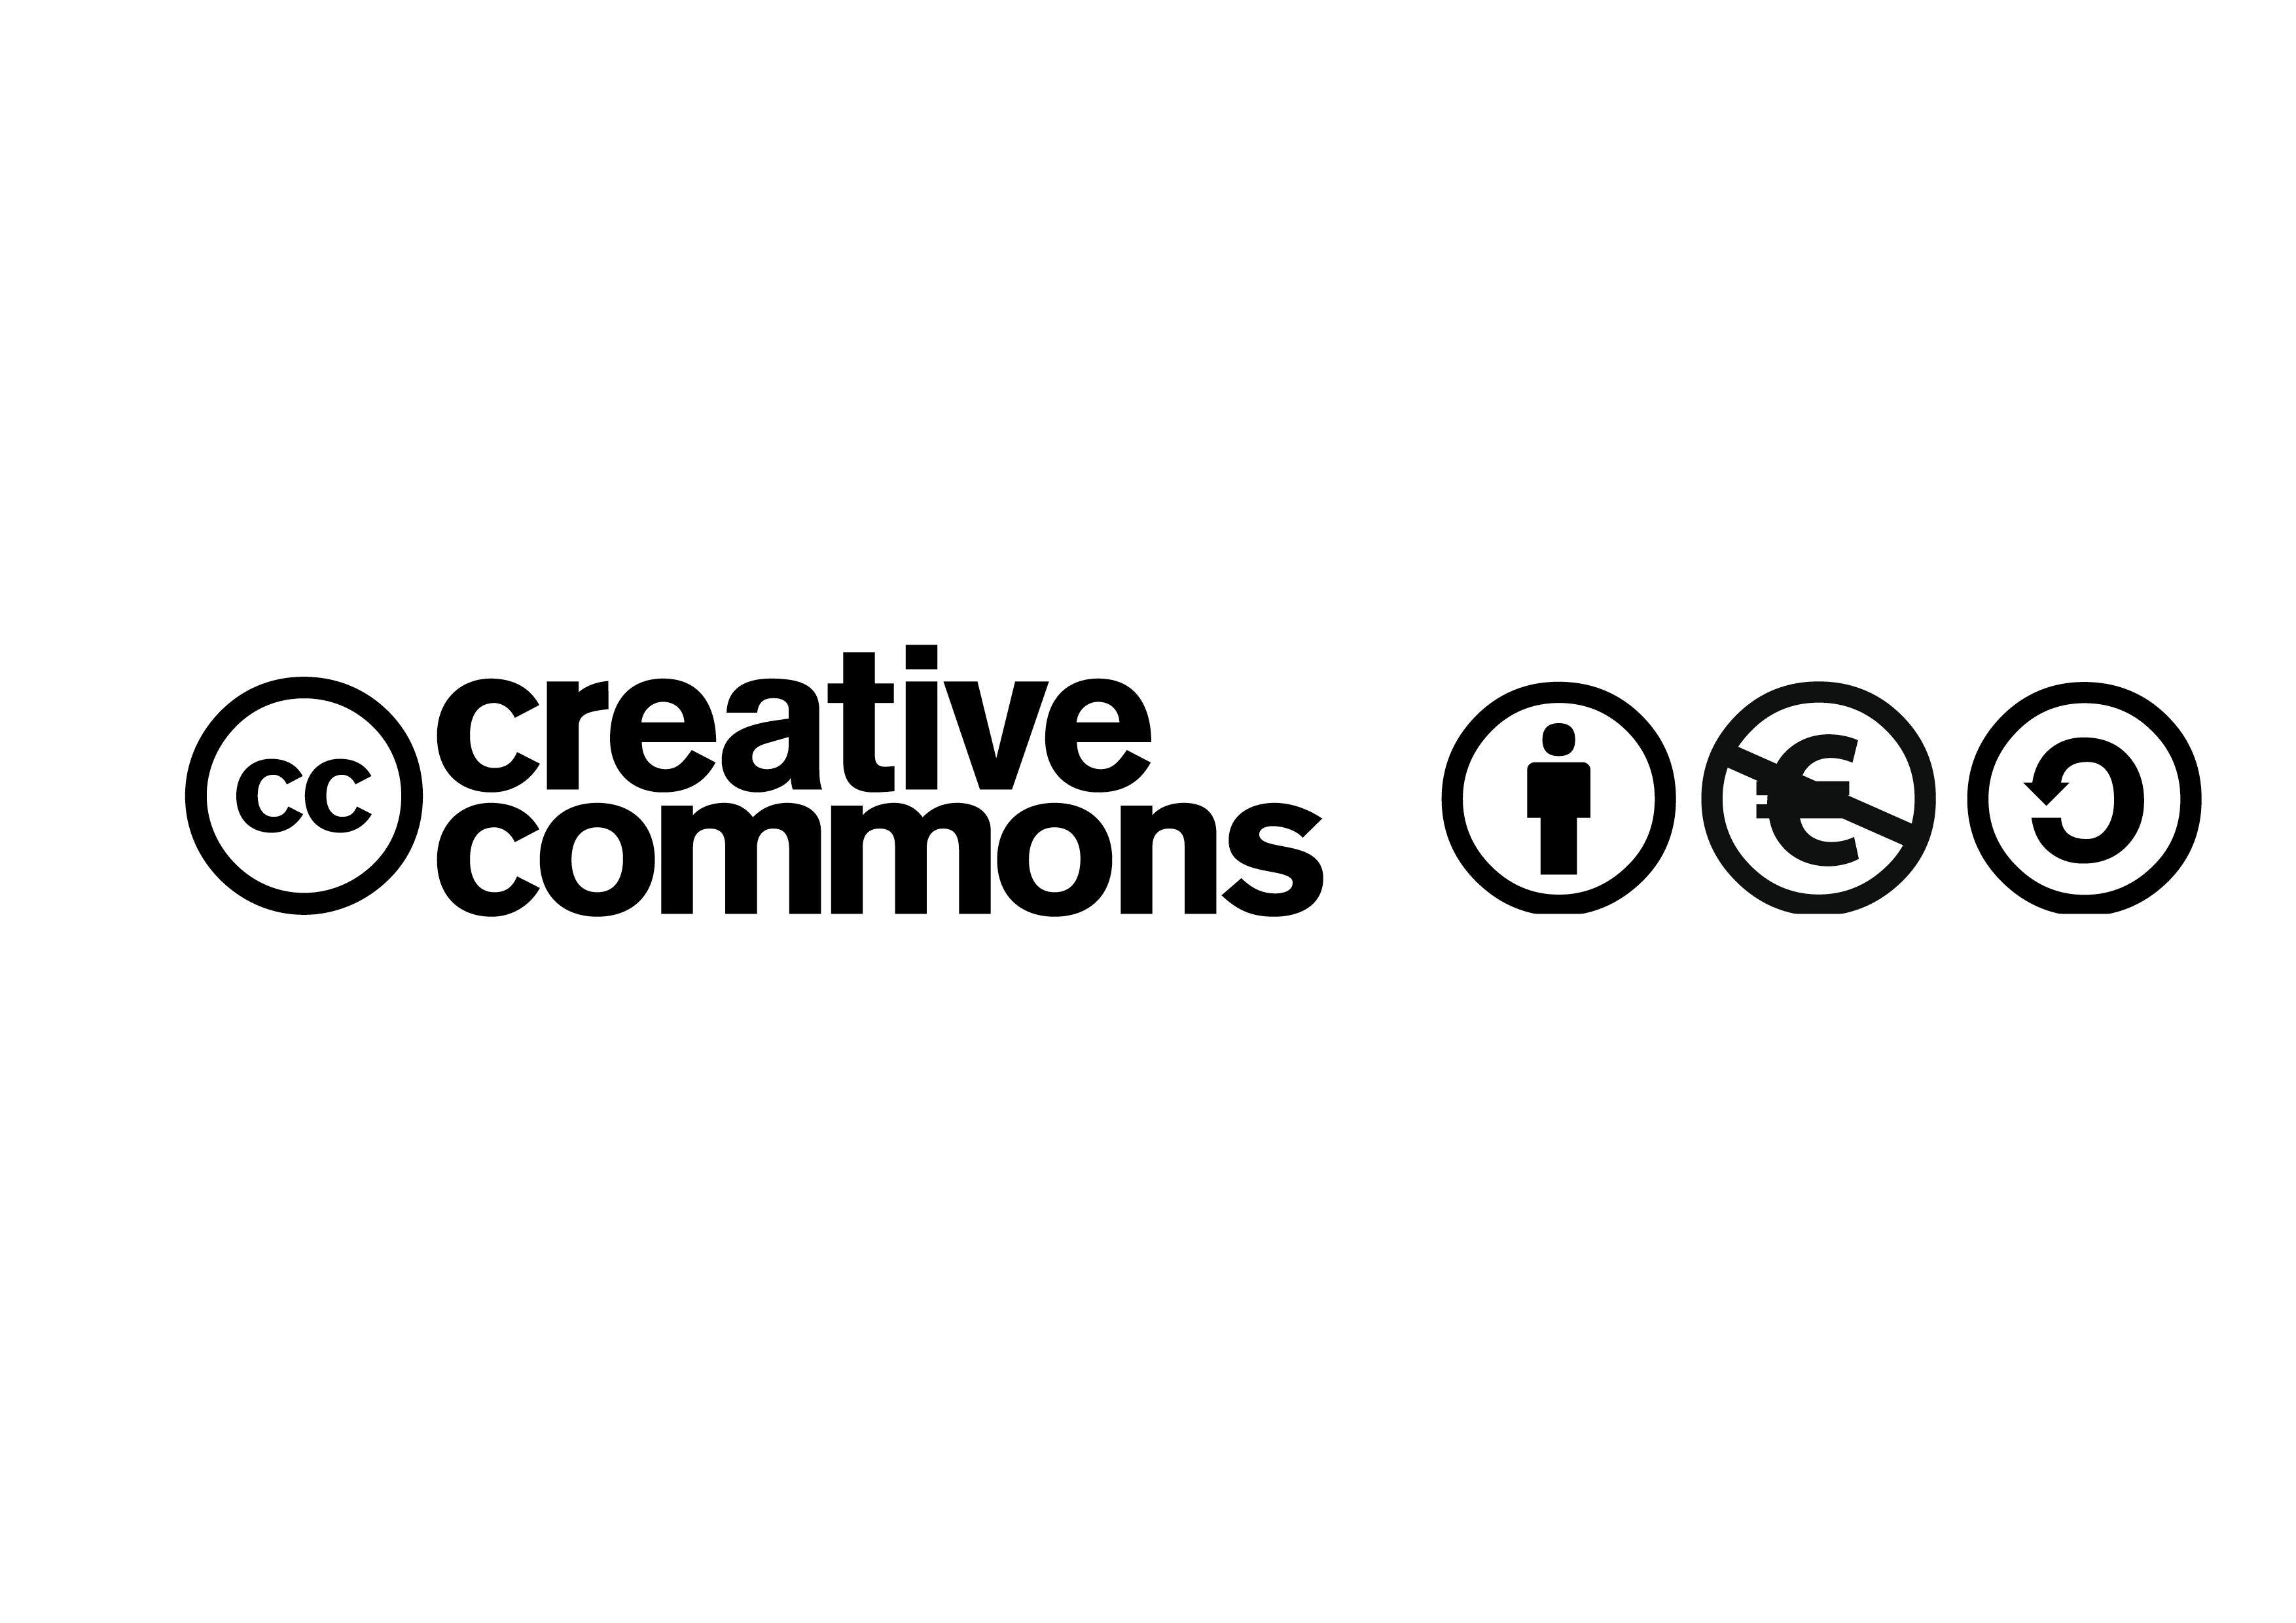 creative commons cc search - 1280×720